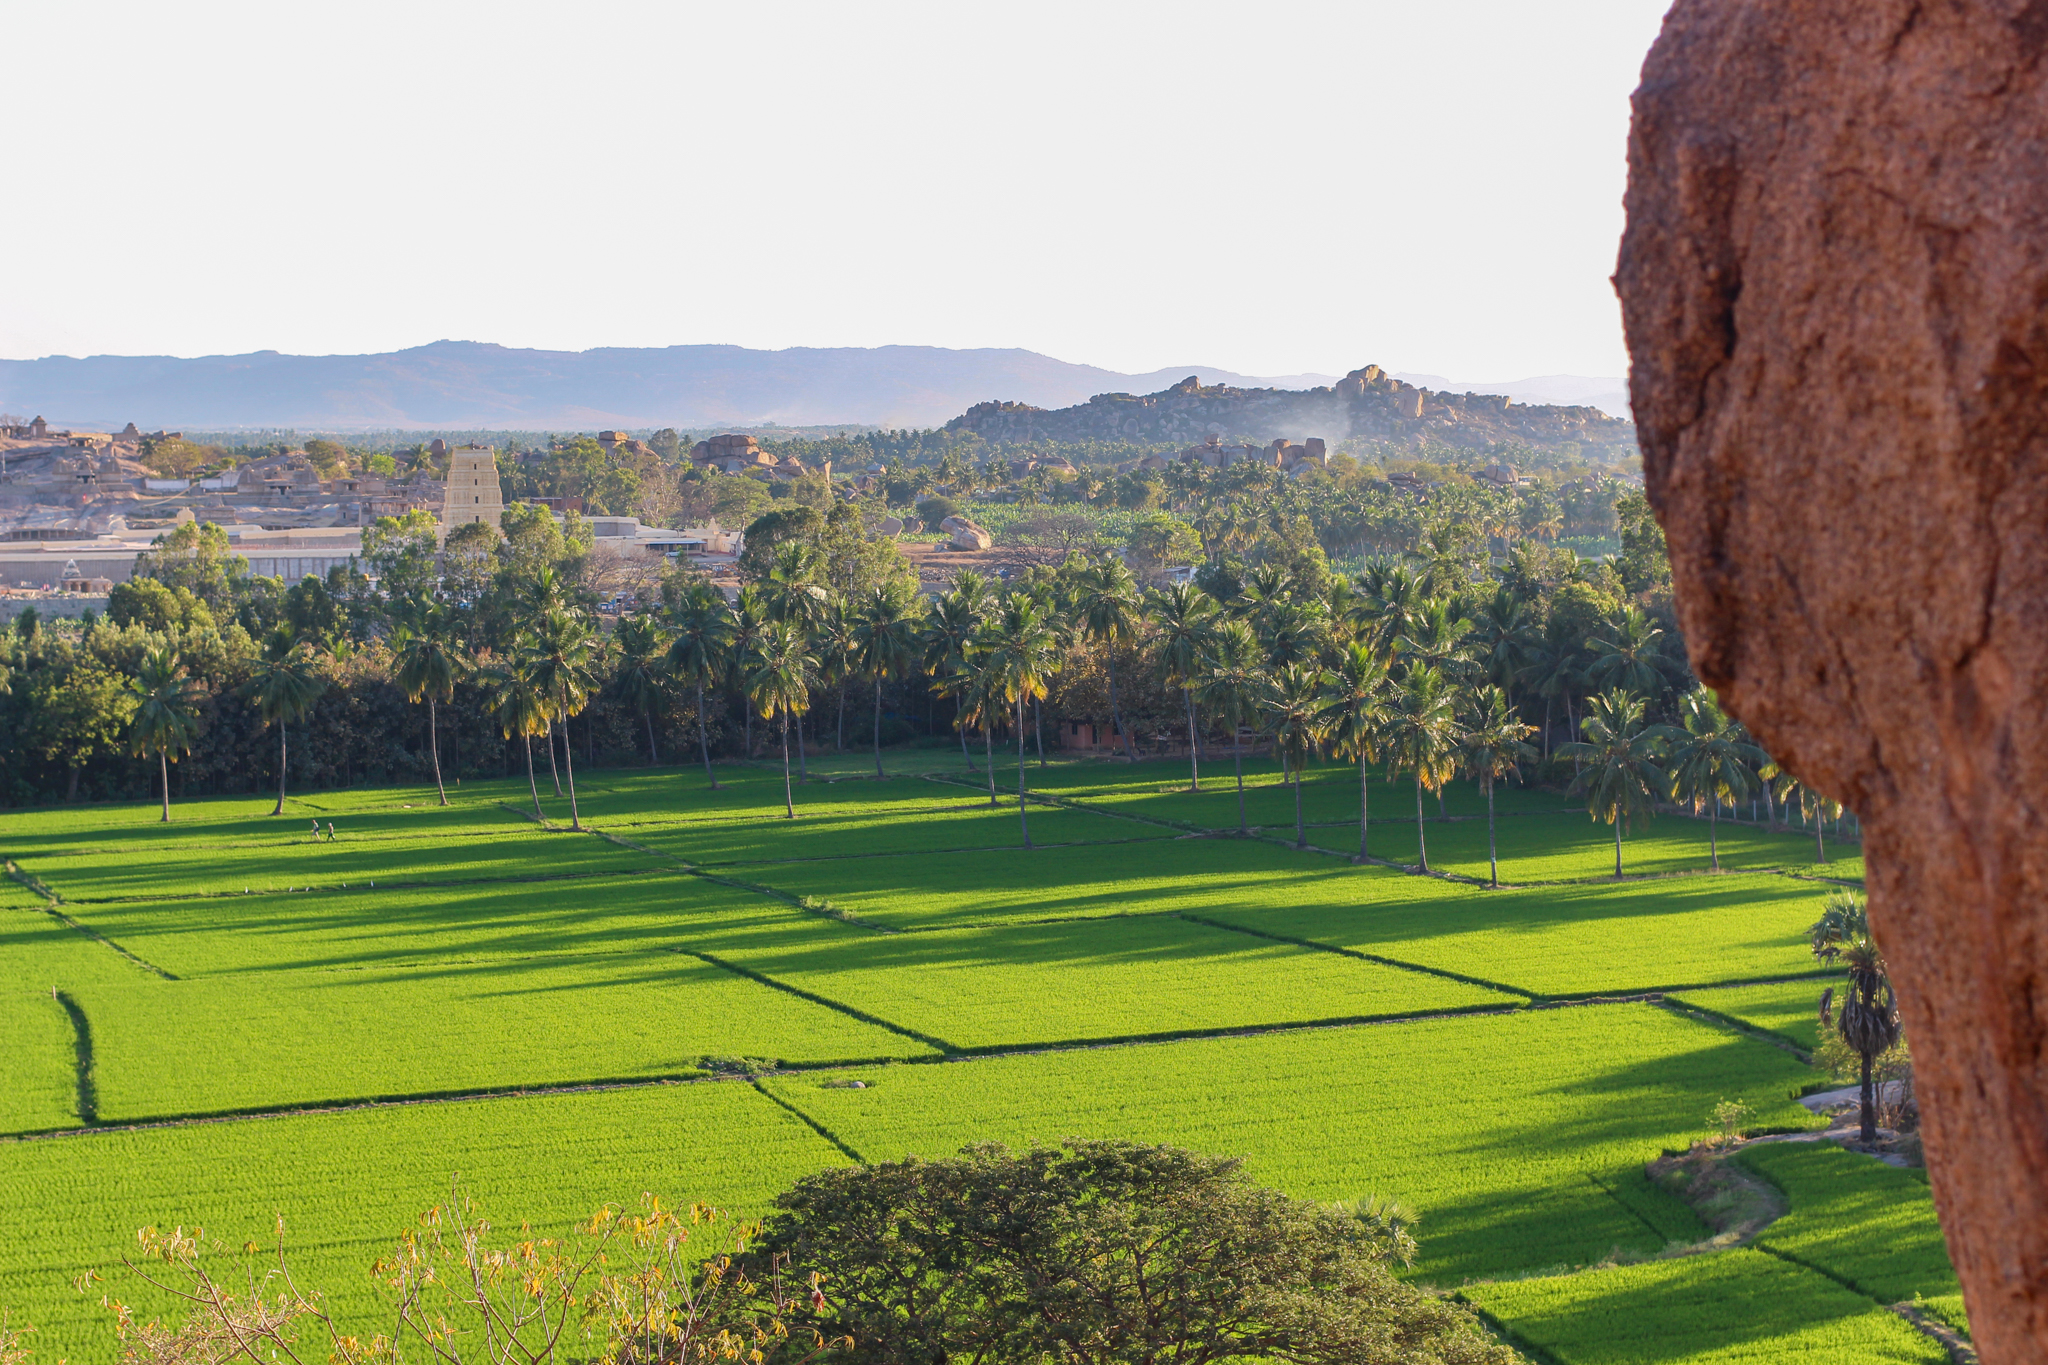 Stunning green rice fields and Virupaksha Temple in the distance, as seen from Sunset Point on Hippy Island